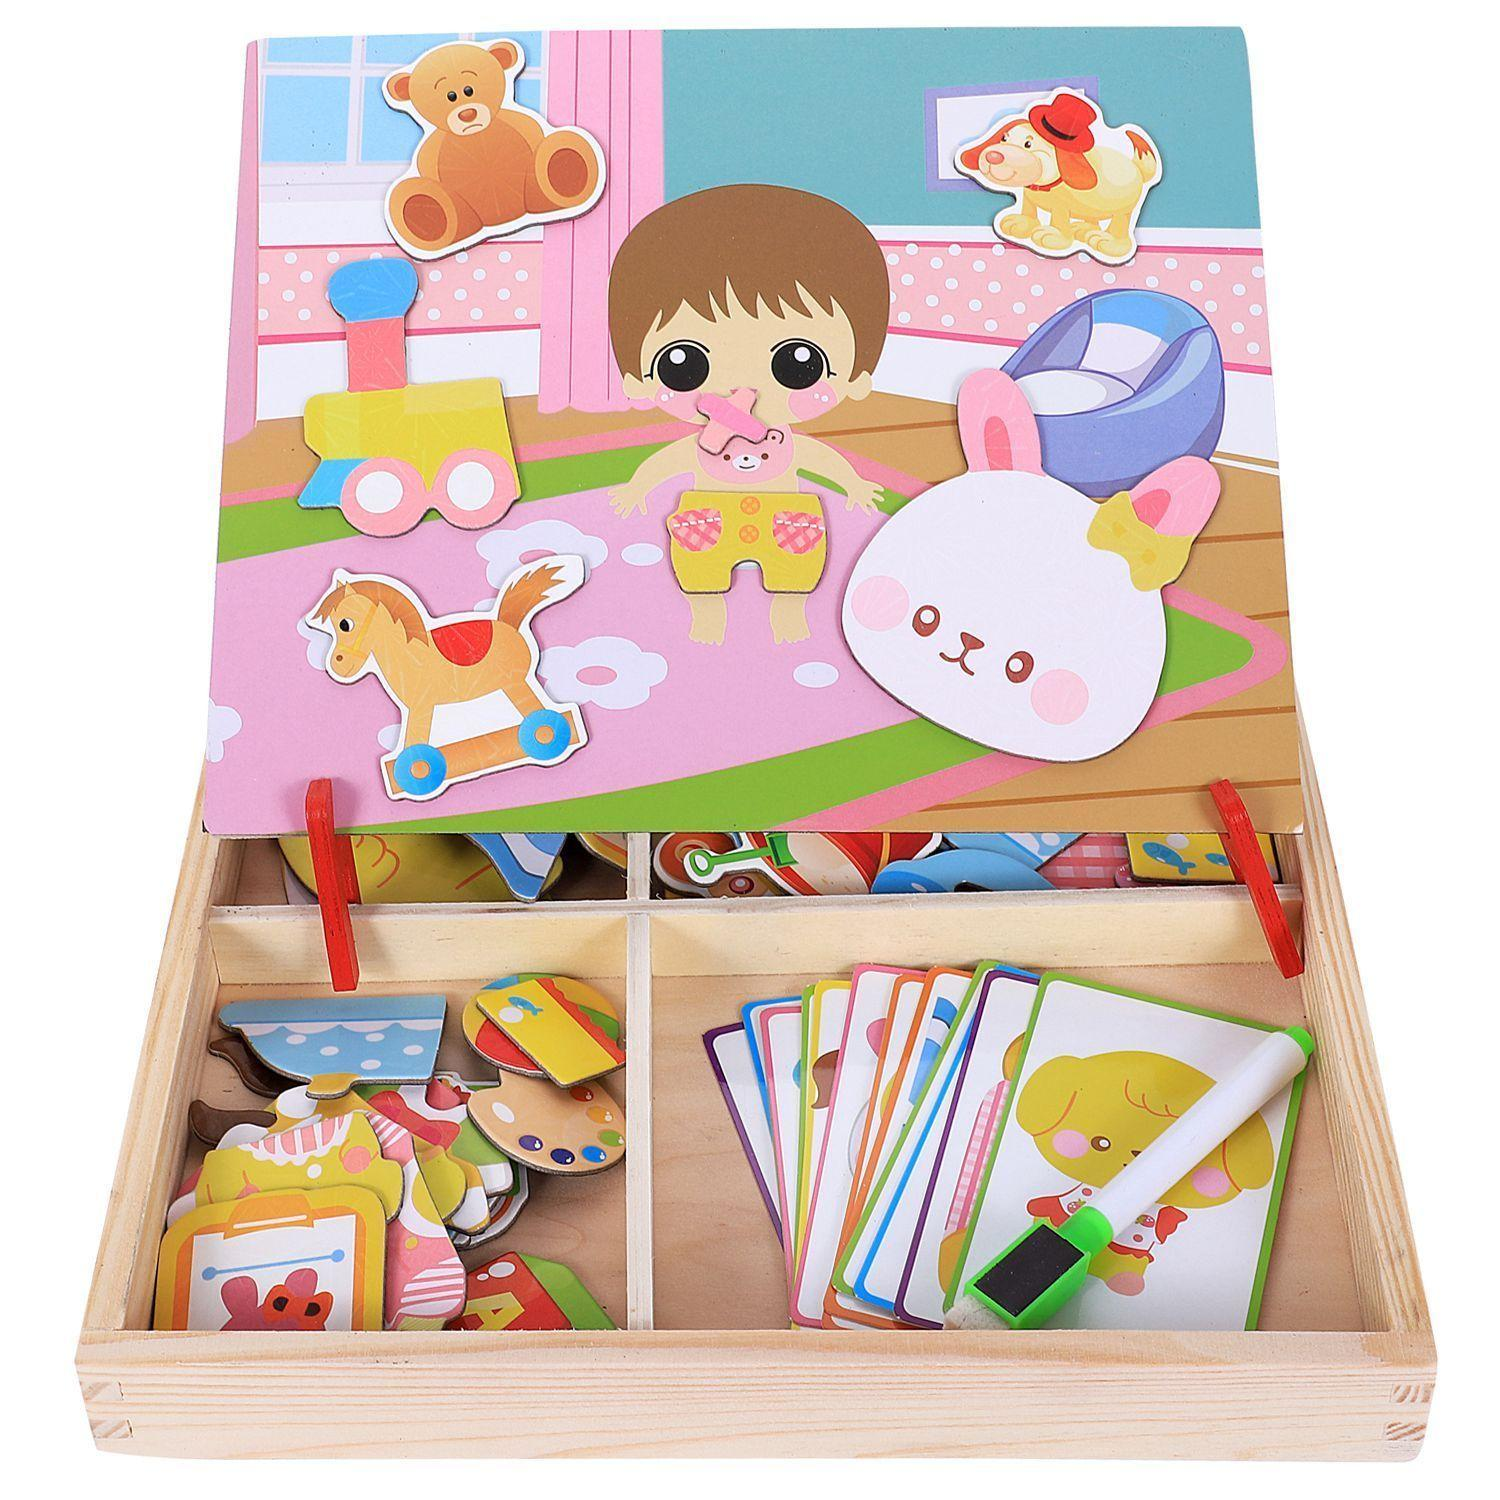 Magnetic Fun Jigsaw Children Wooden Puzzle Board Box Pieces Games Cartoon Educational Drawing Baby Toys For Girls Boys, Ba